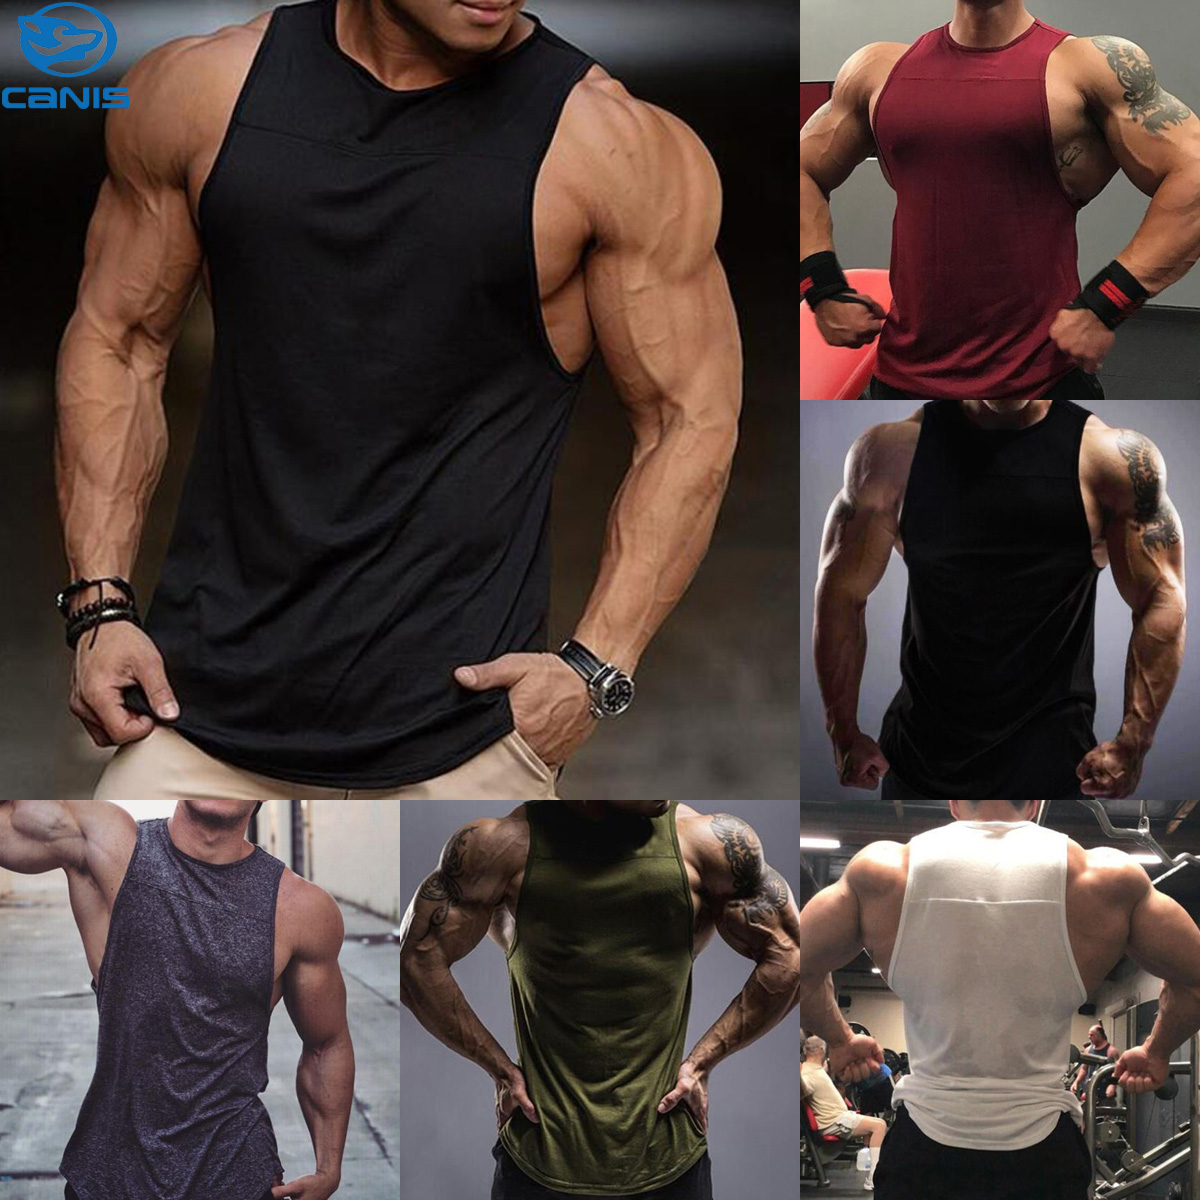 e3be2822c227f Details about MenS Gym Singlet Tank Top Tee Stringer Bodybuilding Y-Back  Muscle Fitness Vest